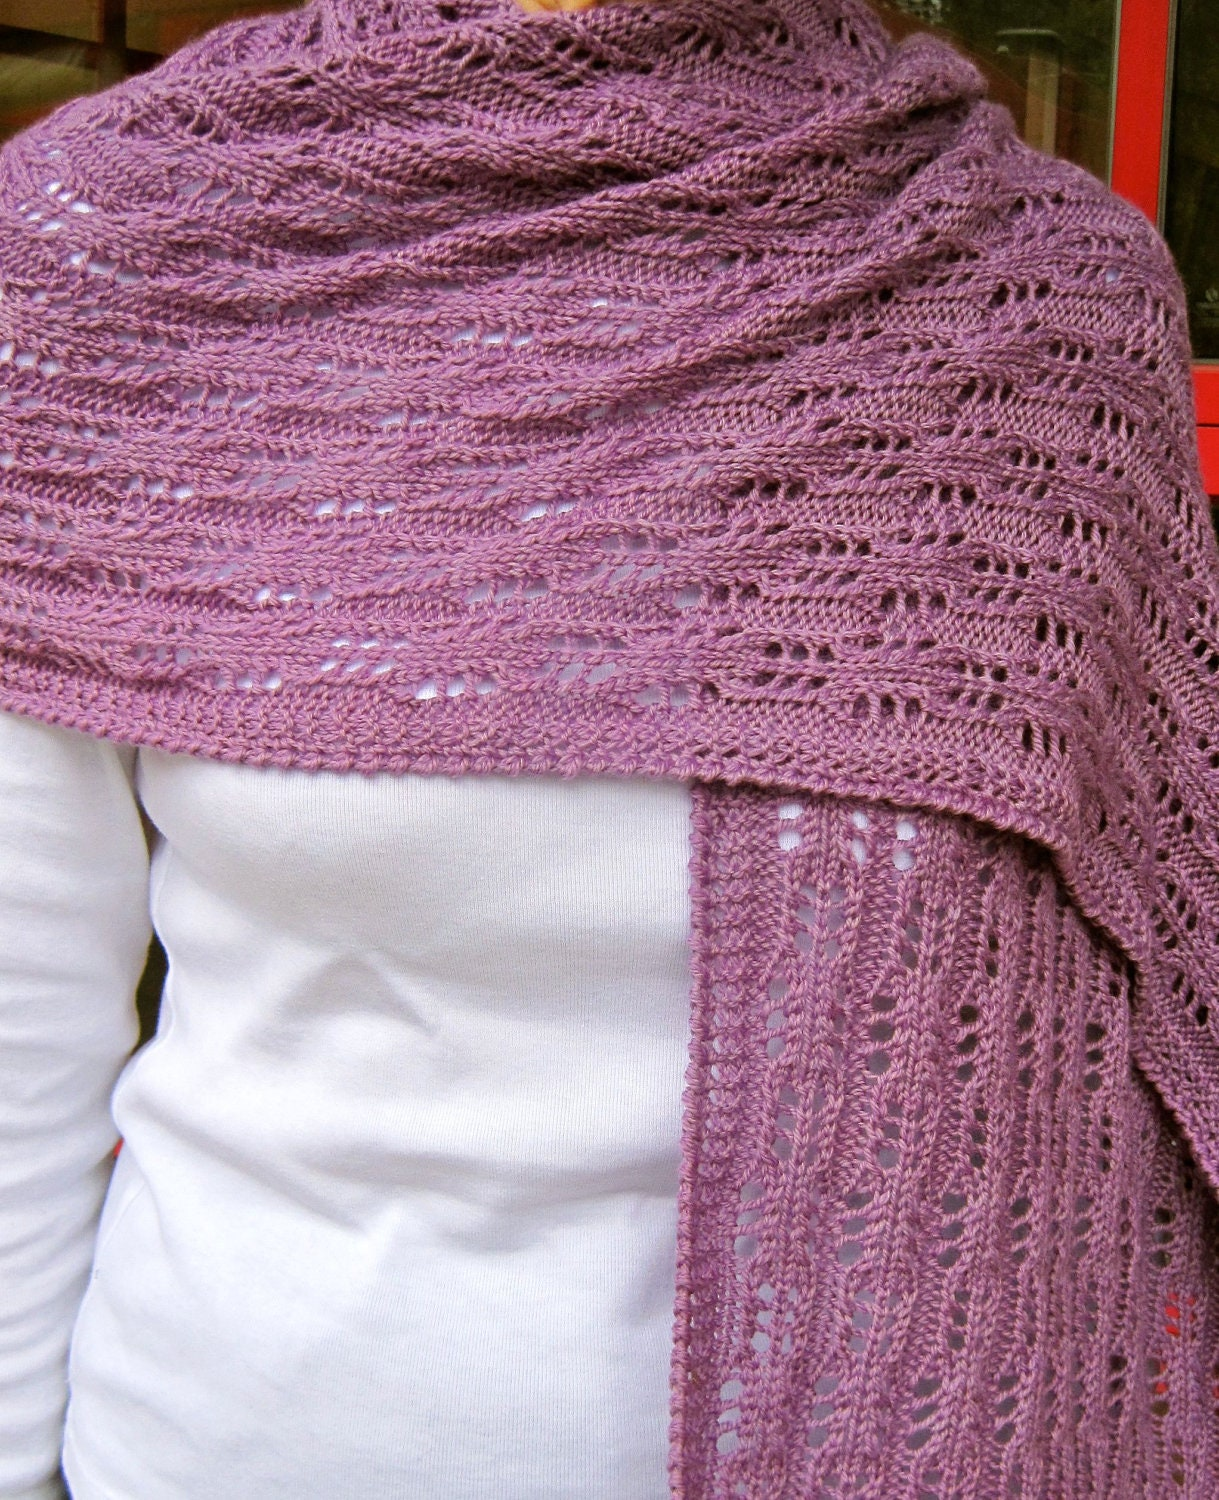 Eyelet Lace Scarf Knitting Pattern : Knit Wrap Pattern: Easy Eyelet Lace Shawl Knitting Pattern